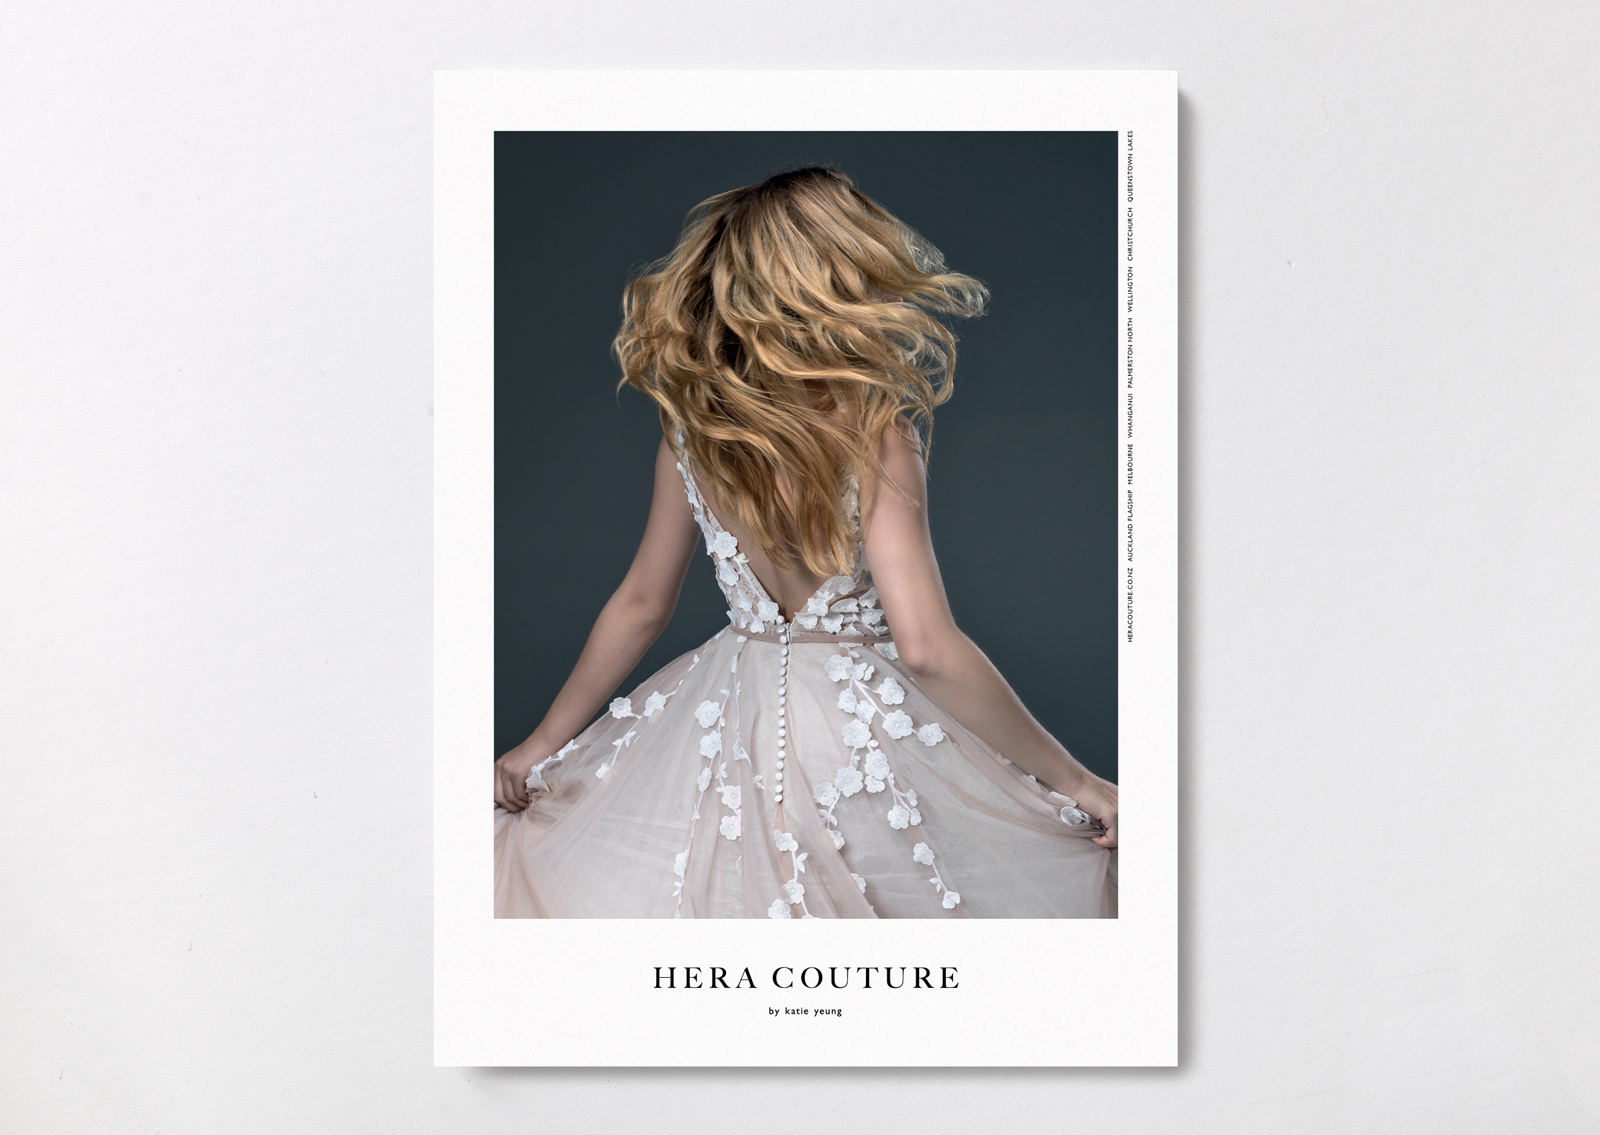 Hera Couture brand postcard – shows flowing hair of bride from behind and detail of gown with cascading flowers